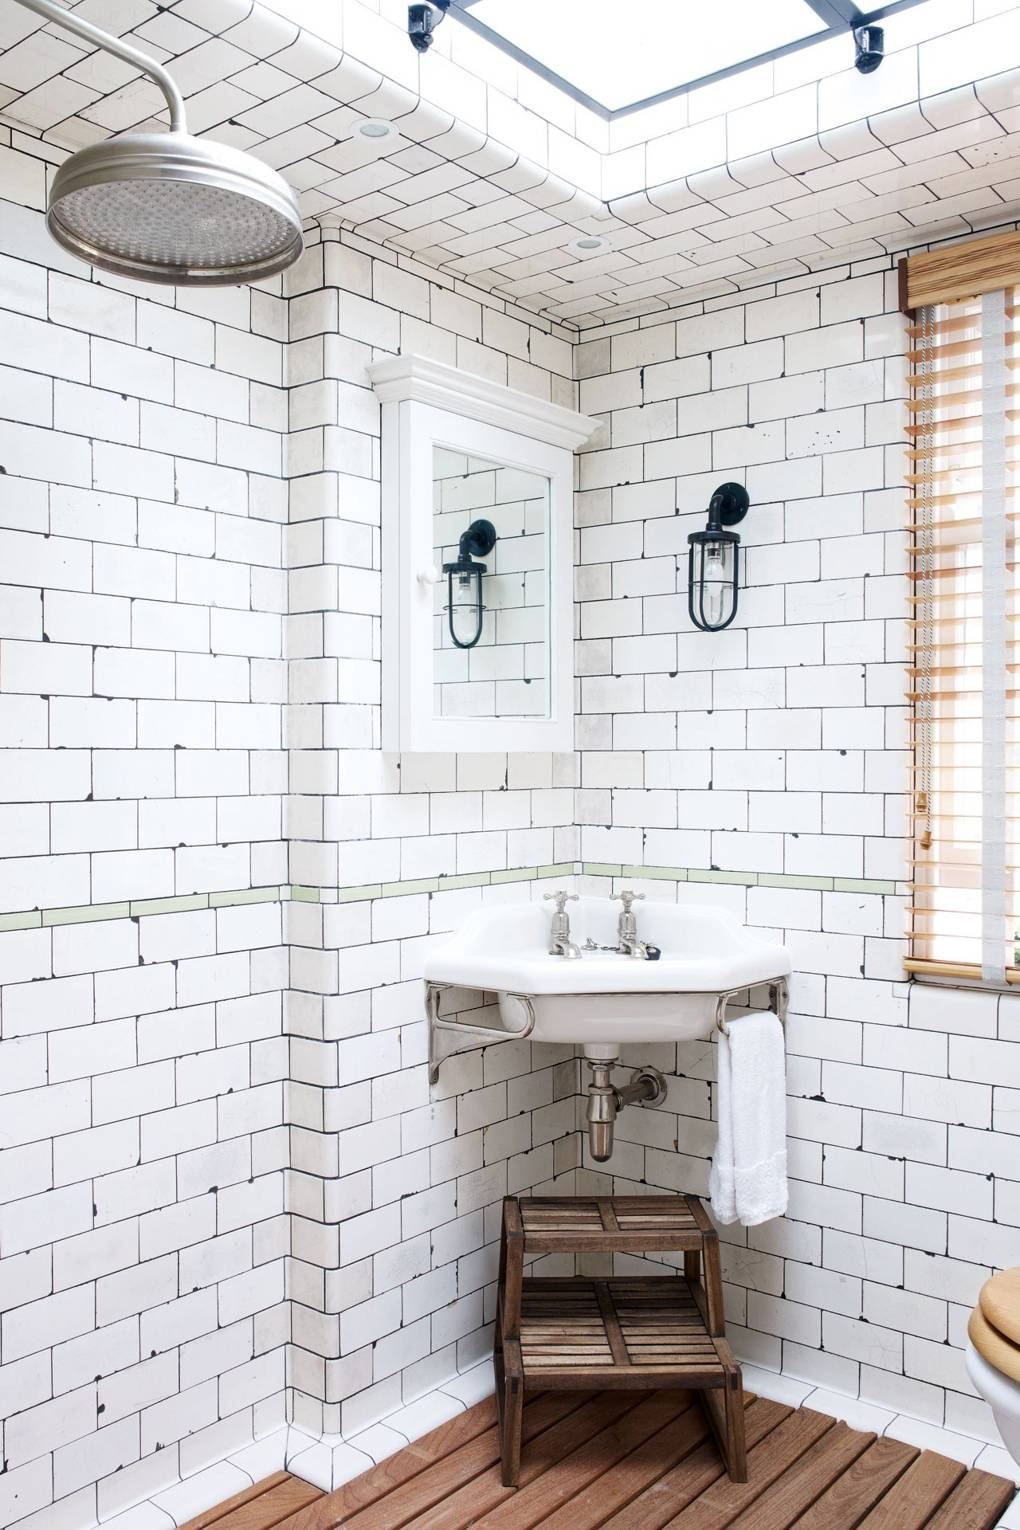 Victorian Ceramic Bathroom Tiles - Bathroom Design Ideas & Images ...